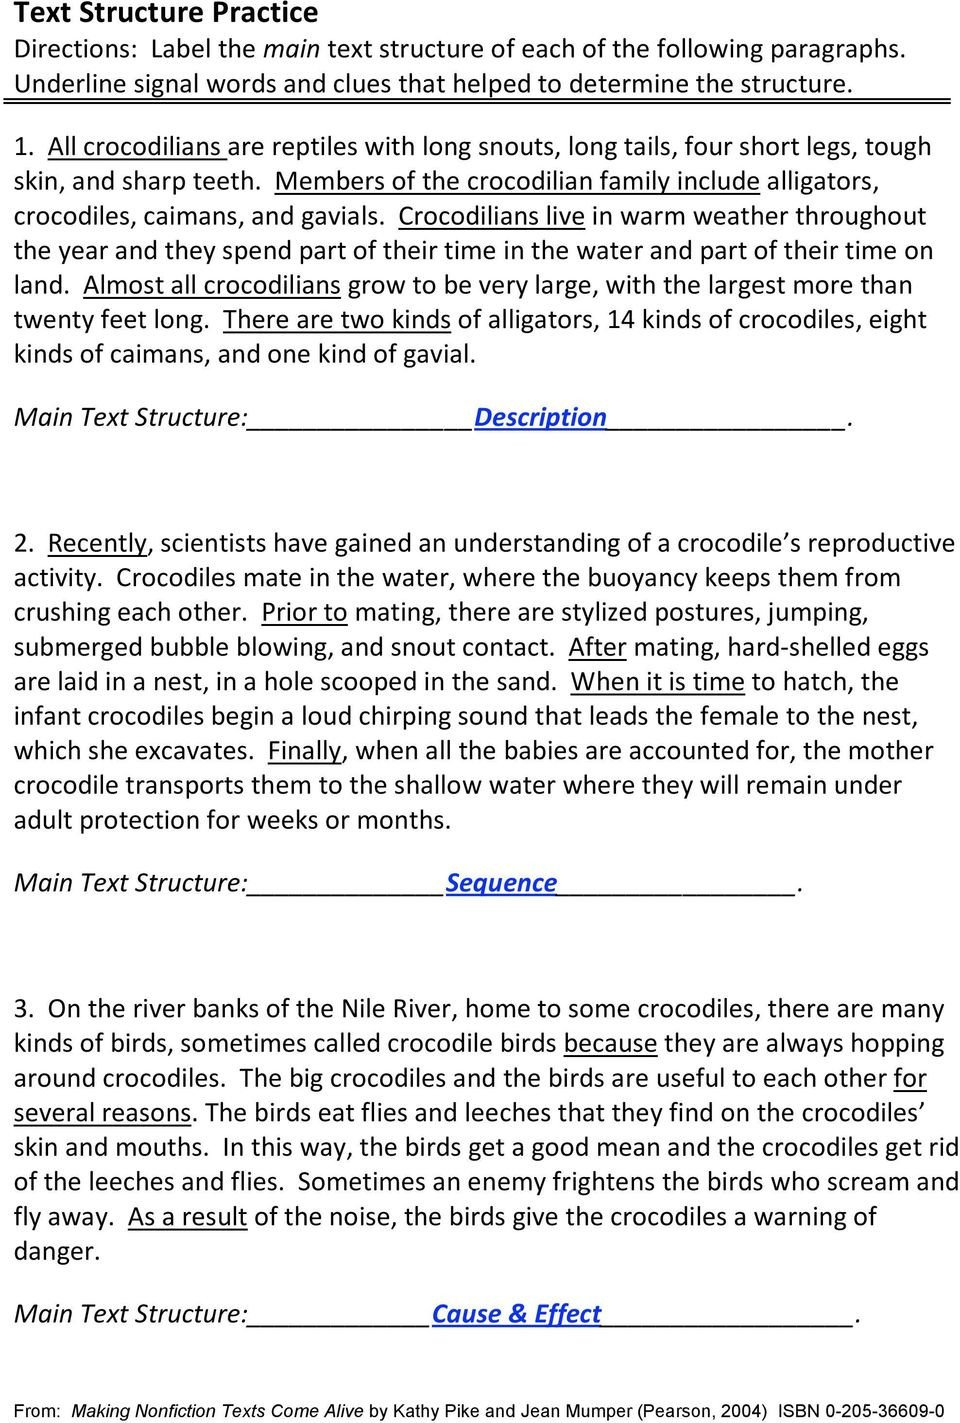 Text Structure Practice Worksheets Identify the Text Structure Of the Following Passages